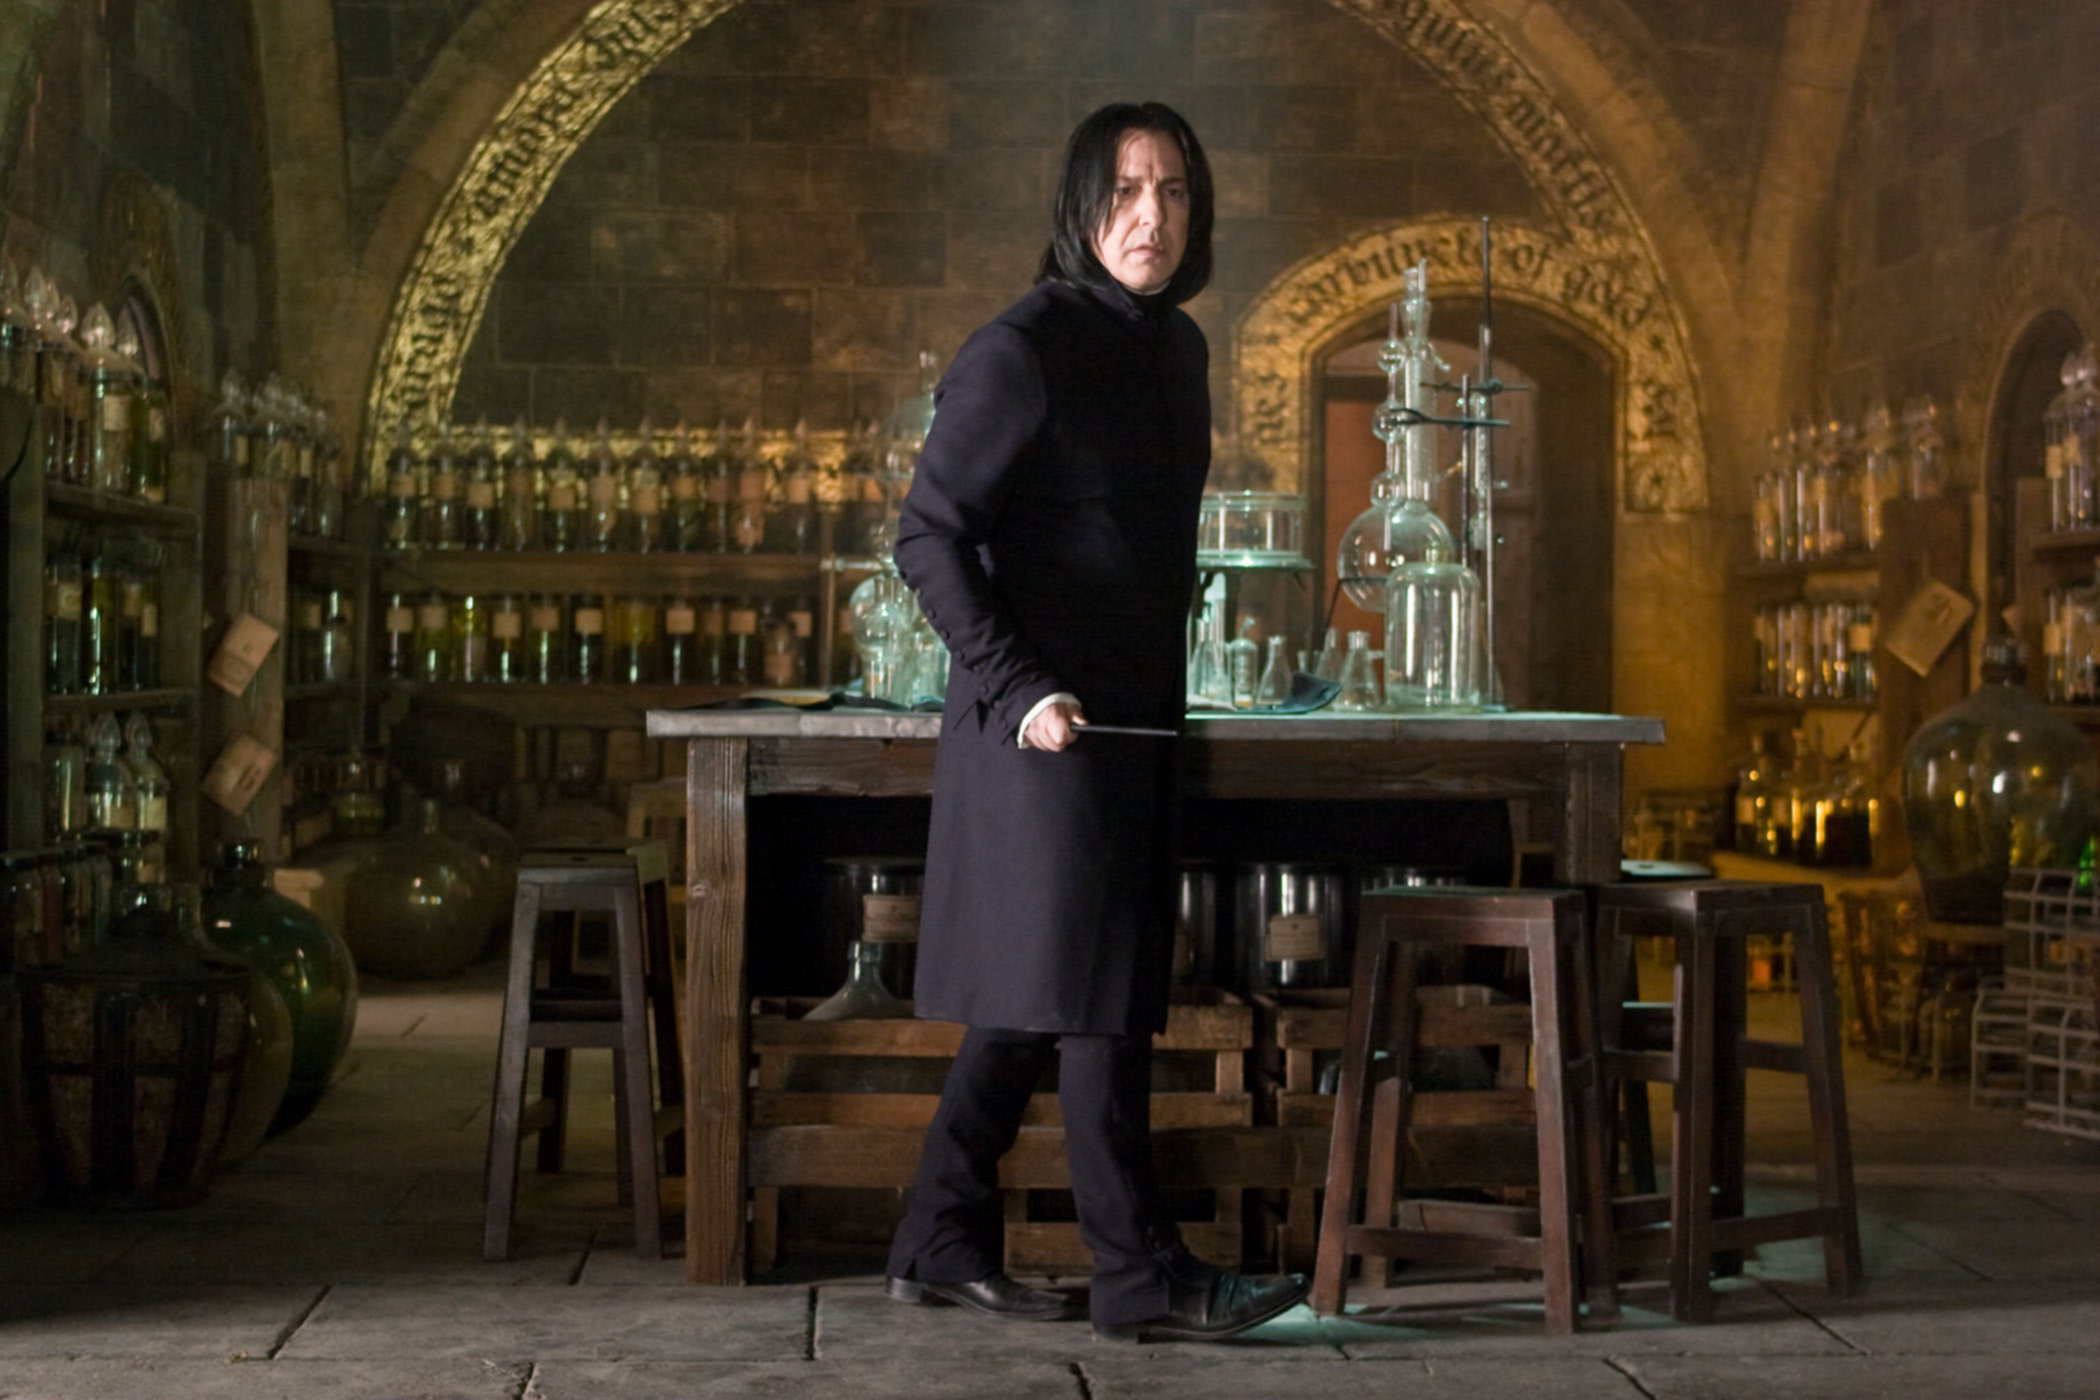 Snape in his potions class room from the Order of the Pheonix